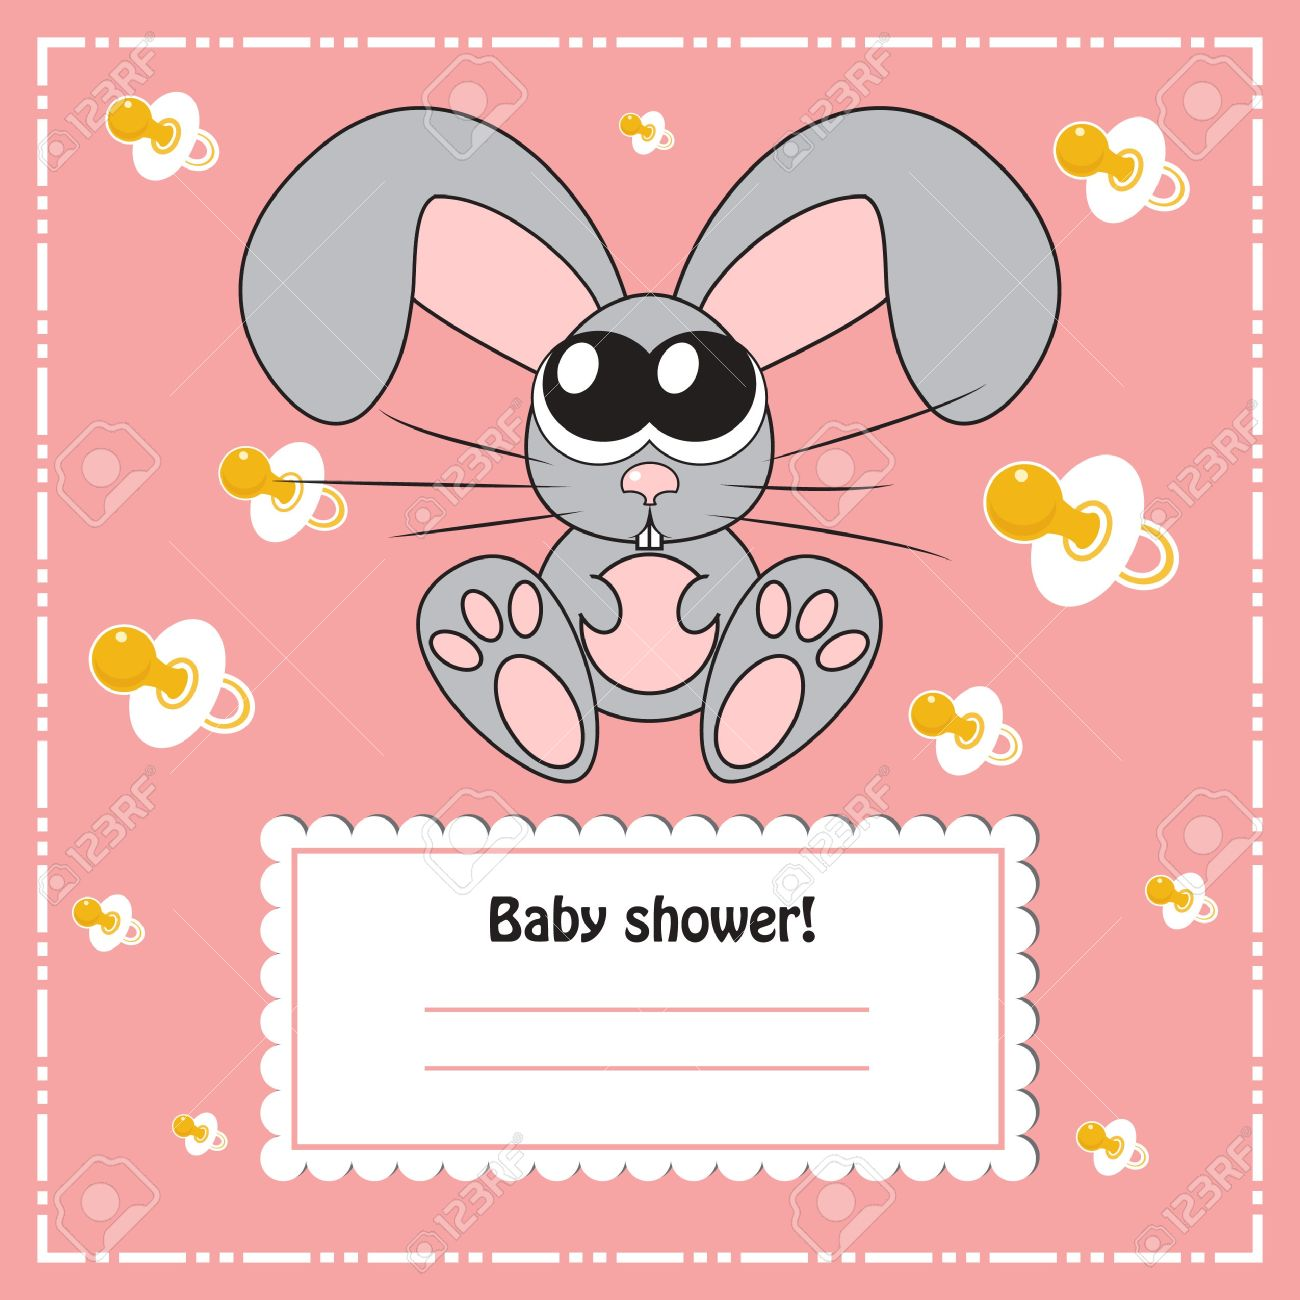 baby shower invitation card with rabbit, vector royalty free, Baby shower